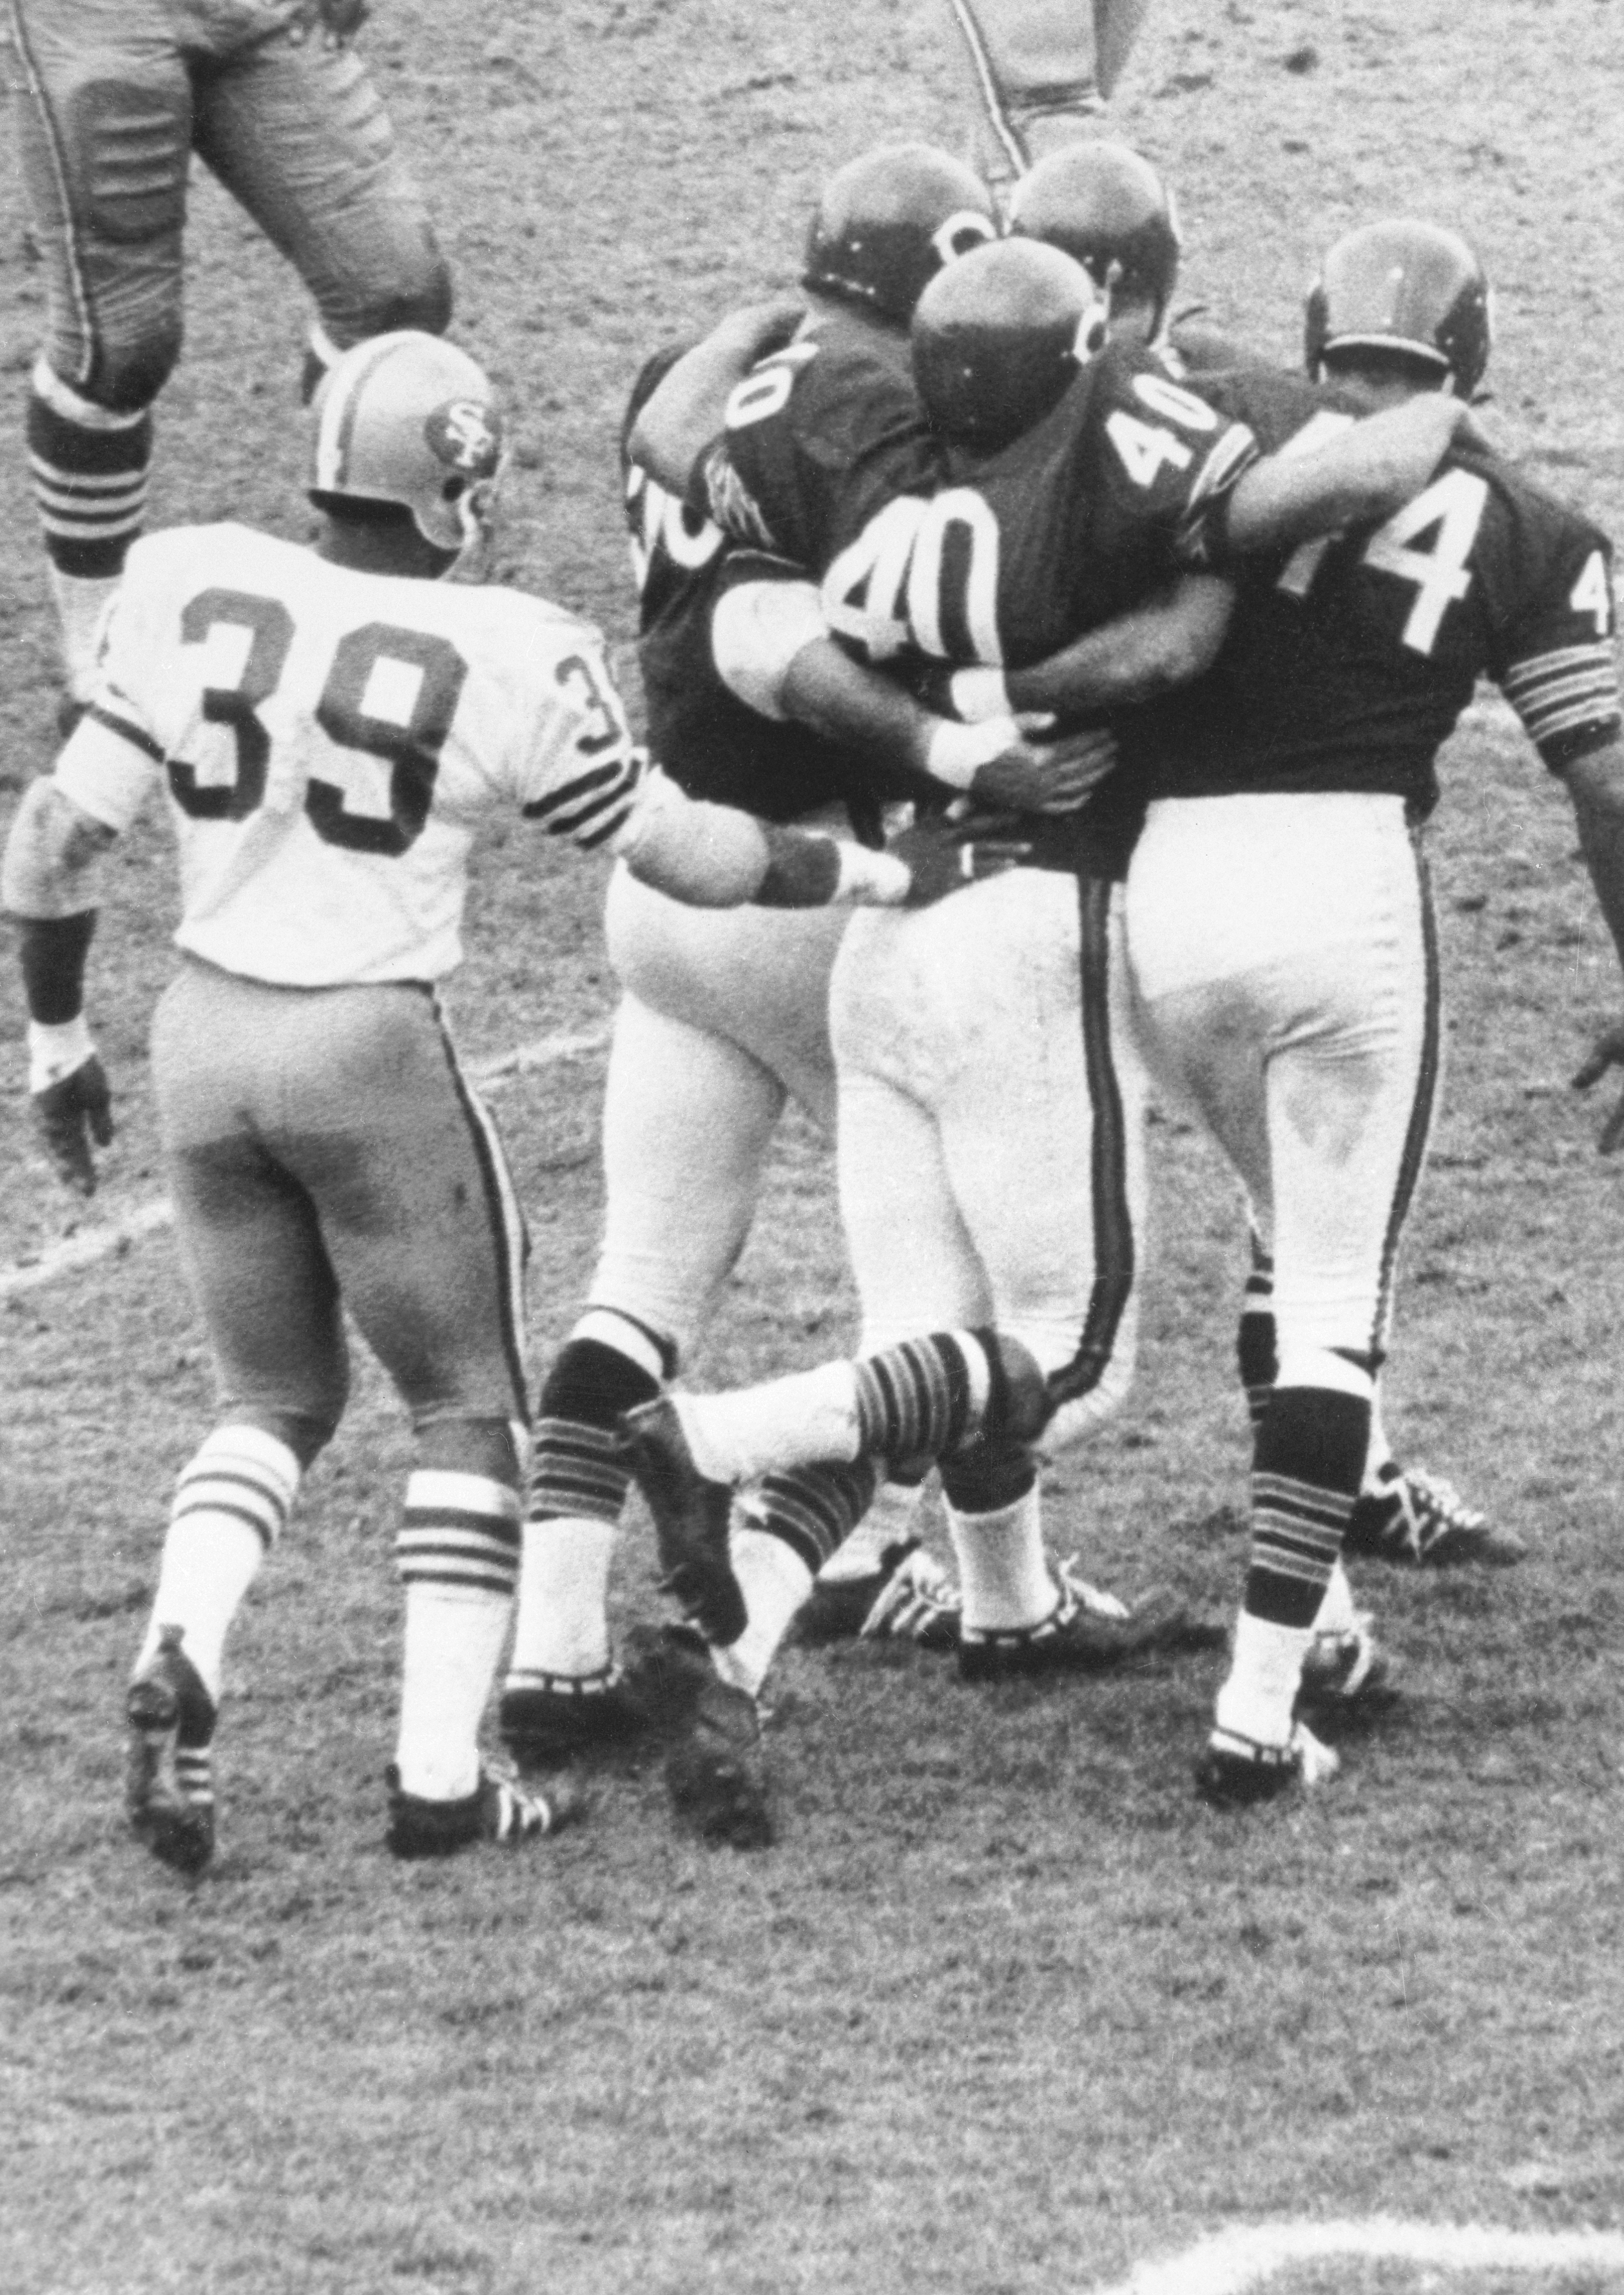 Chicago's Gale Sayers After Being Injured During a Game Against the 49ers